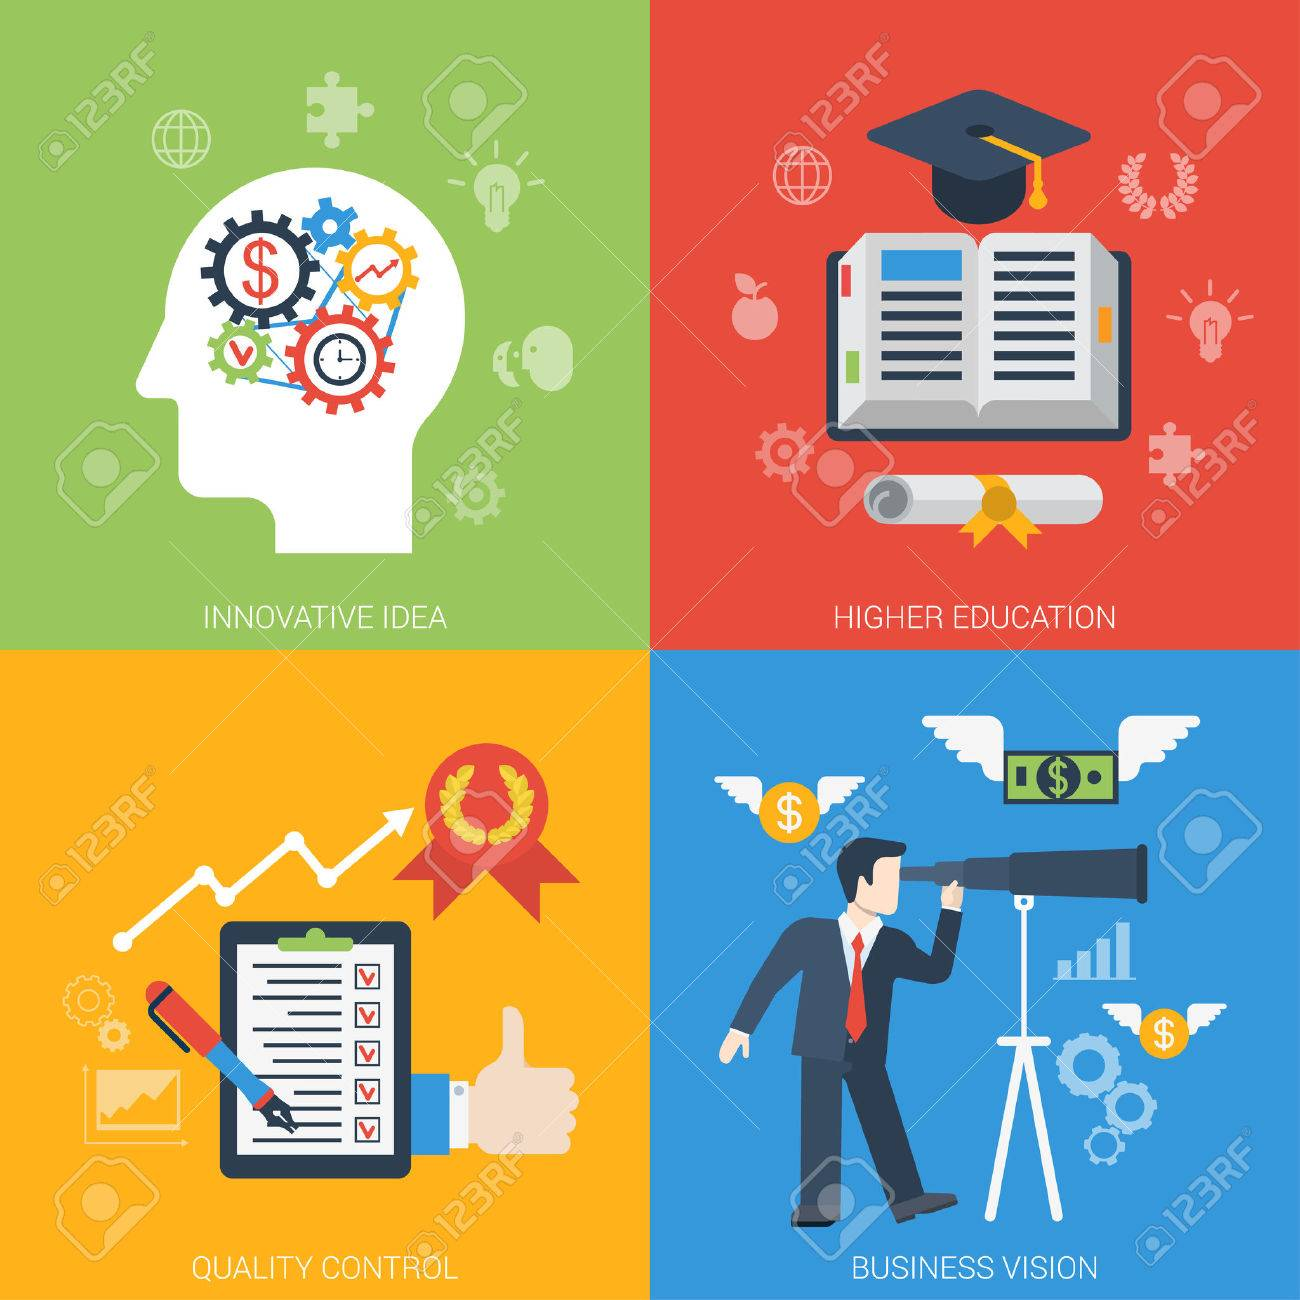 Flat style web banner modern icon set concept from innovative idea to success in business. Gear cogwheel mechanism brain education quality control vision. Website click infogaphics elements collection - 48541748